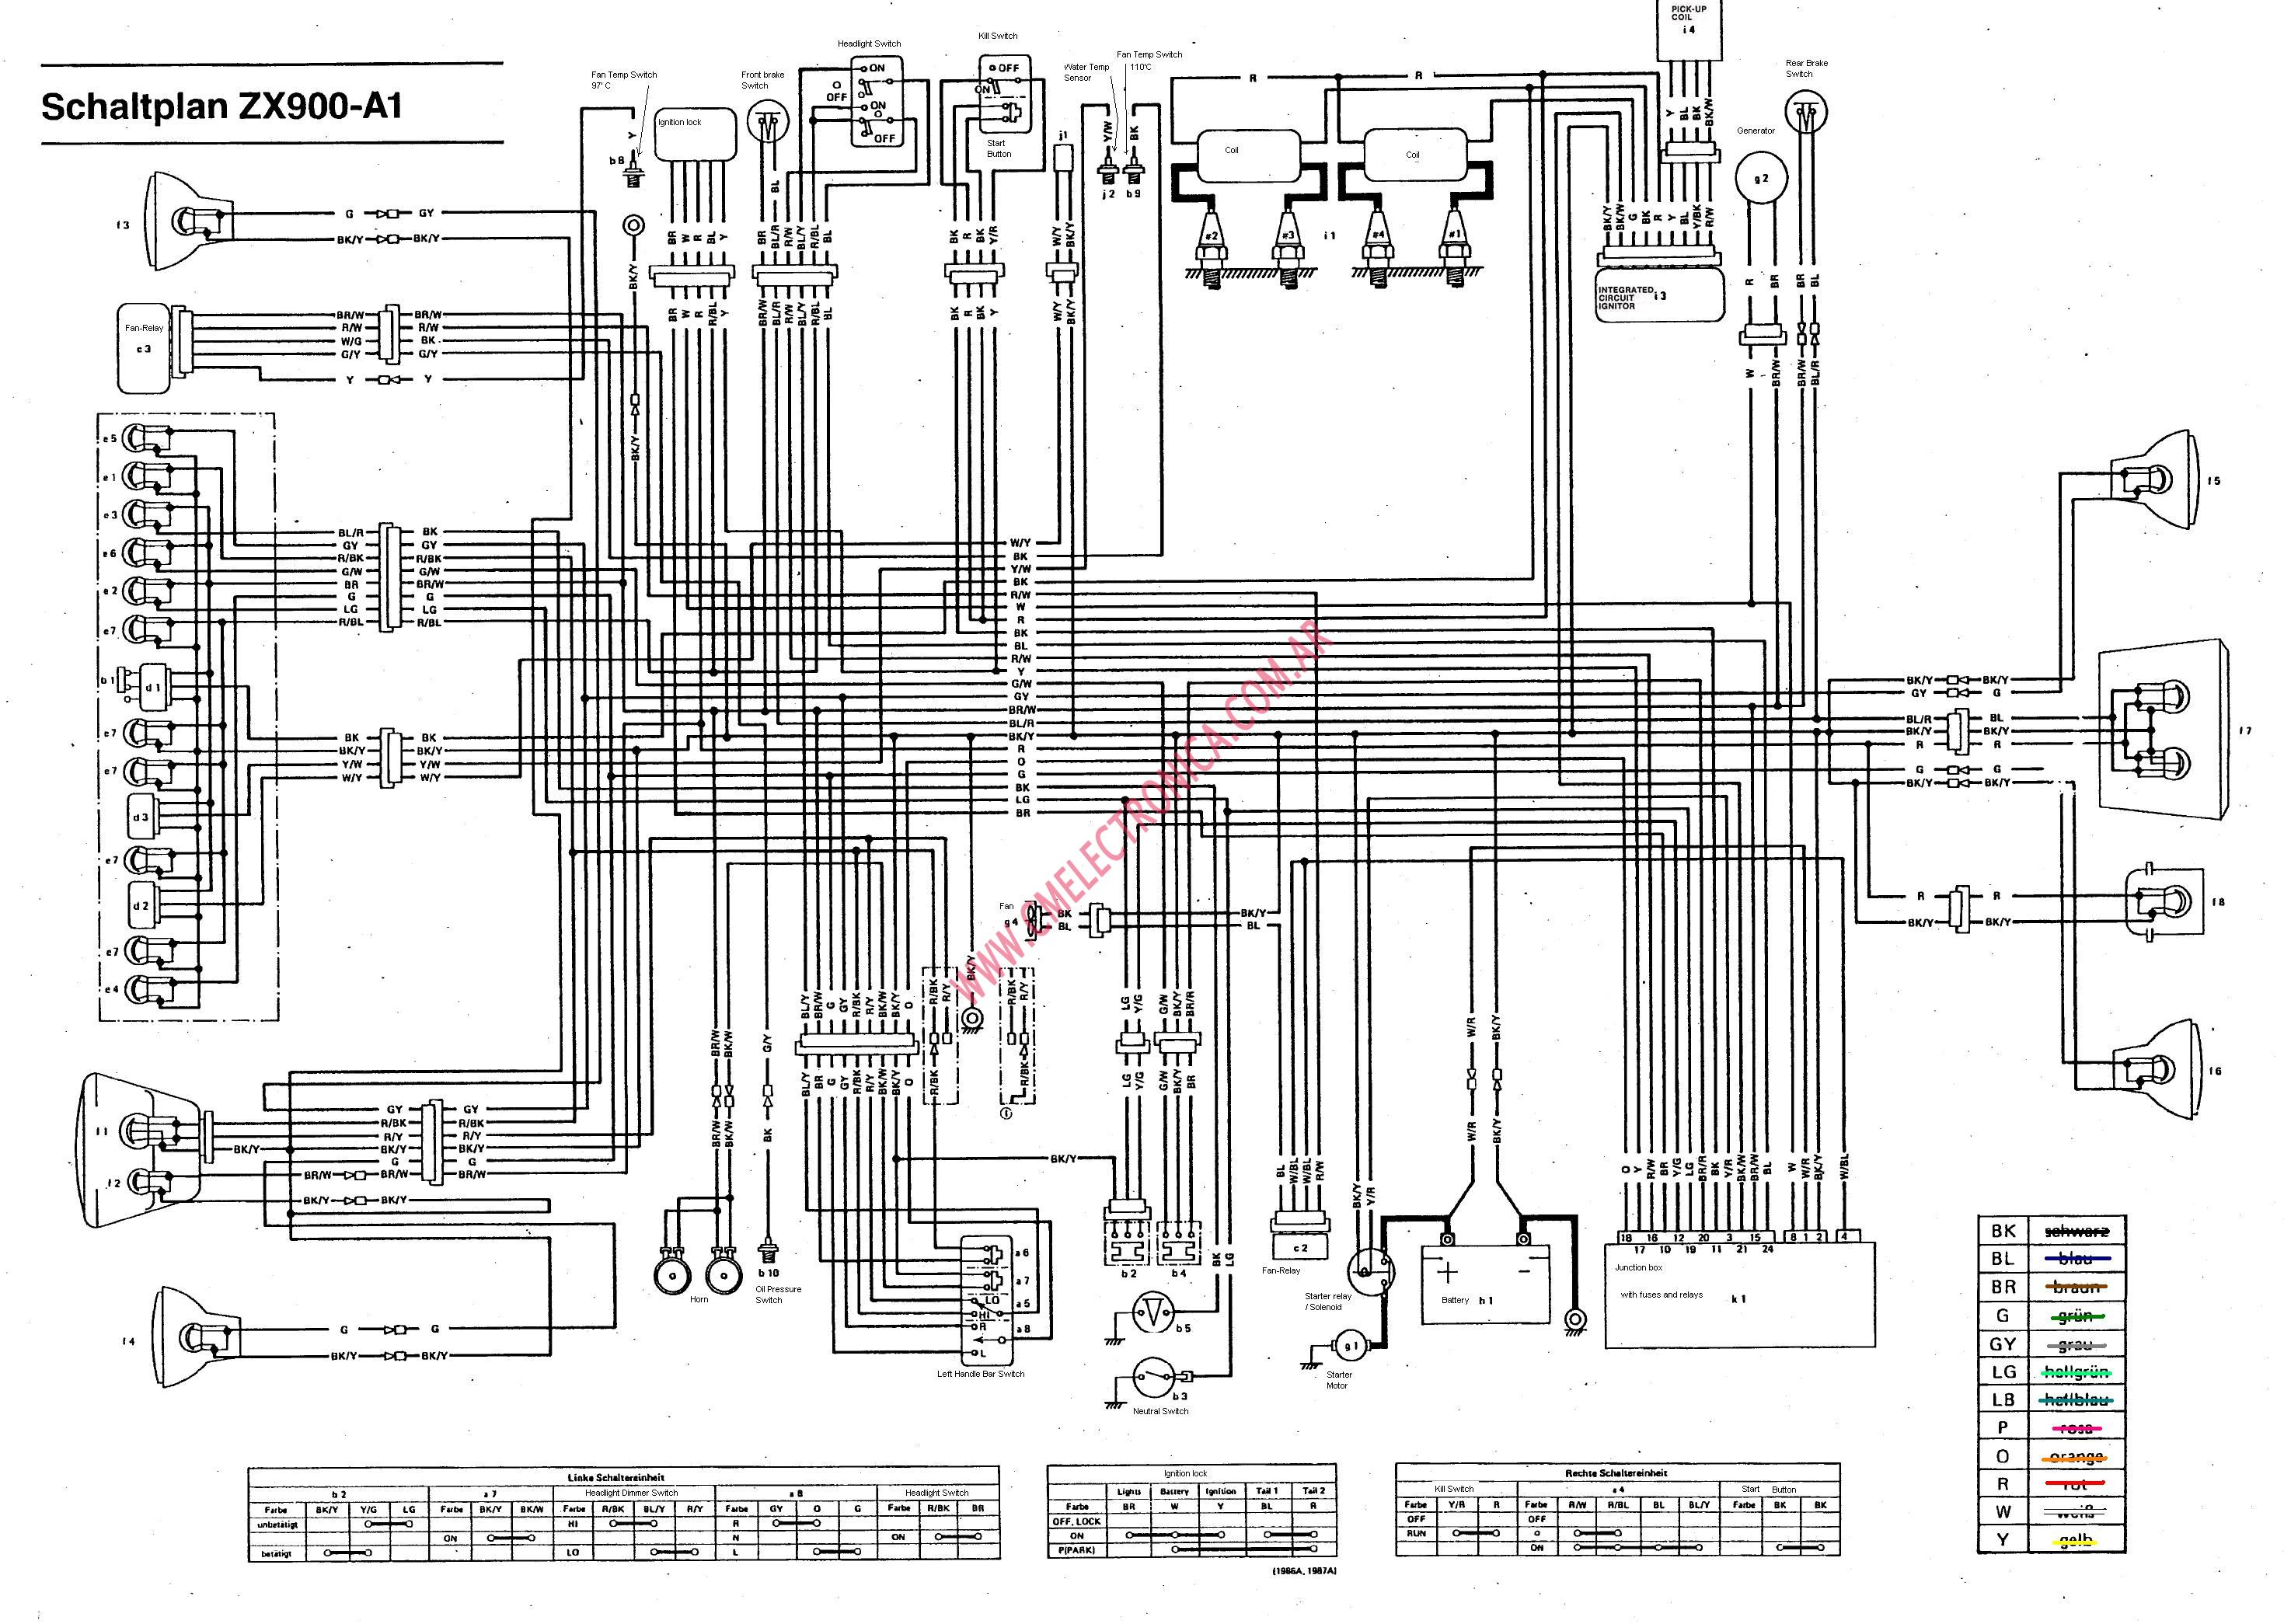 Zxr750 Wiring Diagram And Schematics 95 Yamaha Moto 4 Get Free Image About 1995 Kawasaki 900 Zxi Ignition Schematic Rh Seniorlivinguniversity Co Zxr 750 H1